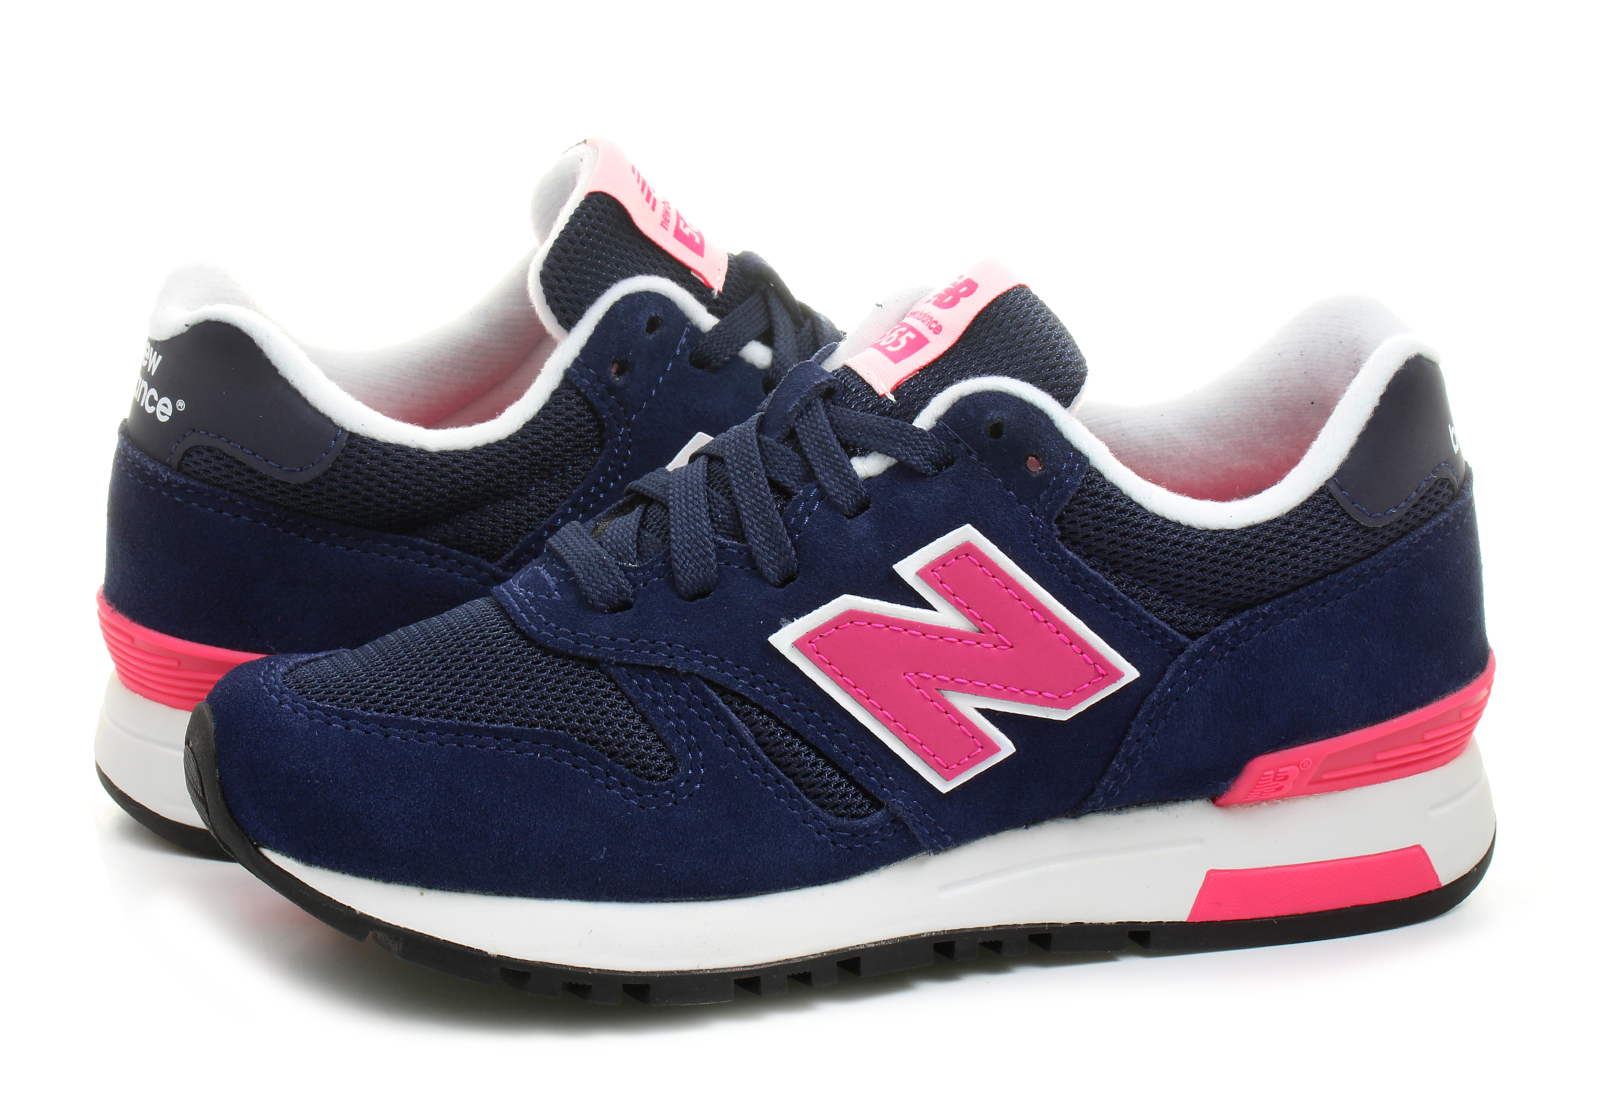 New Balance Shoes - Wl565 - WL565NPW - Online shop for sneakers ... c6798442ed